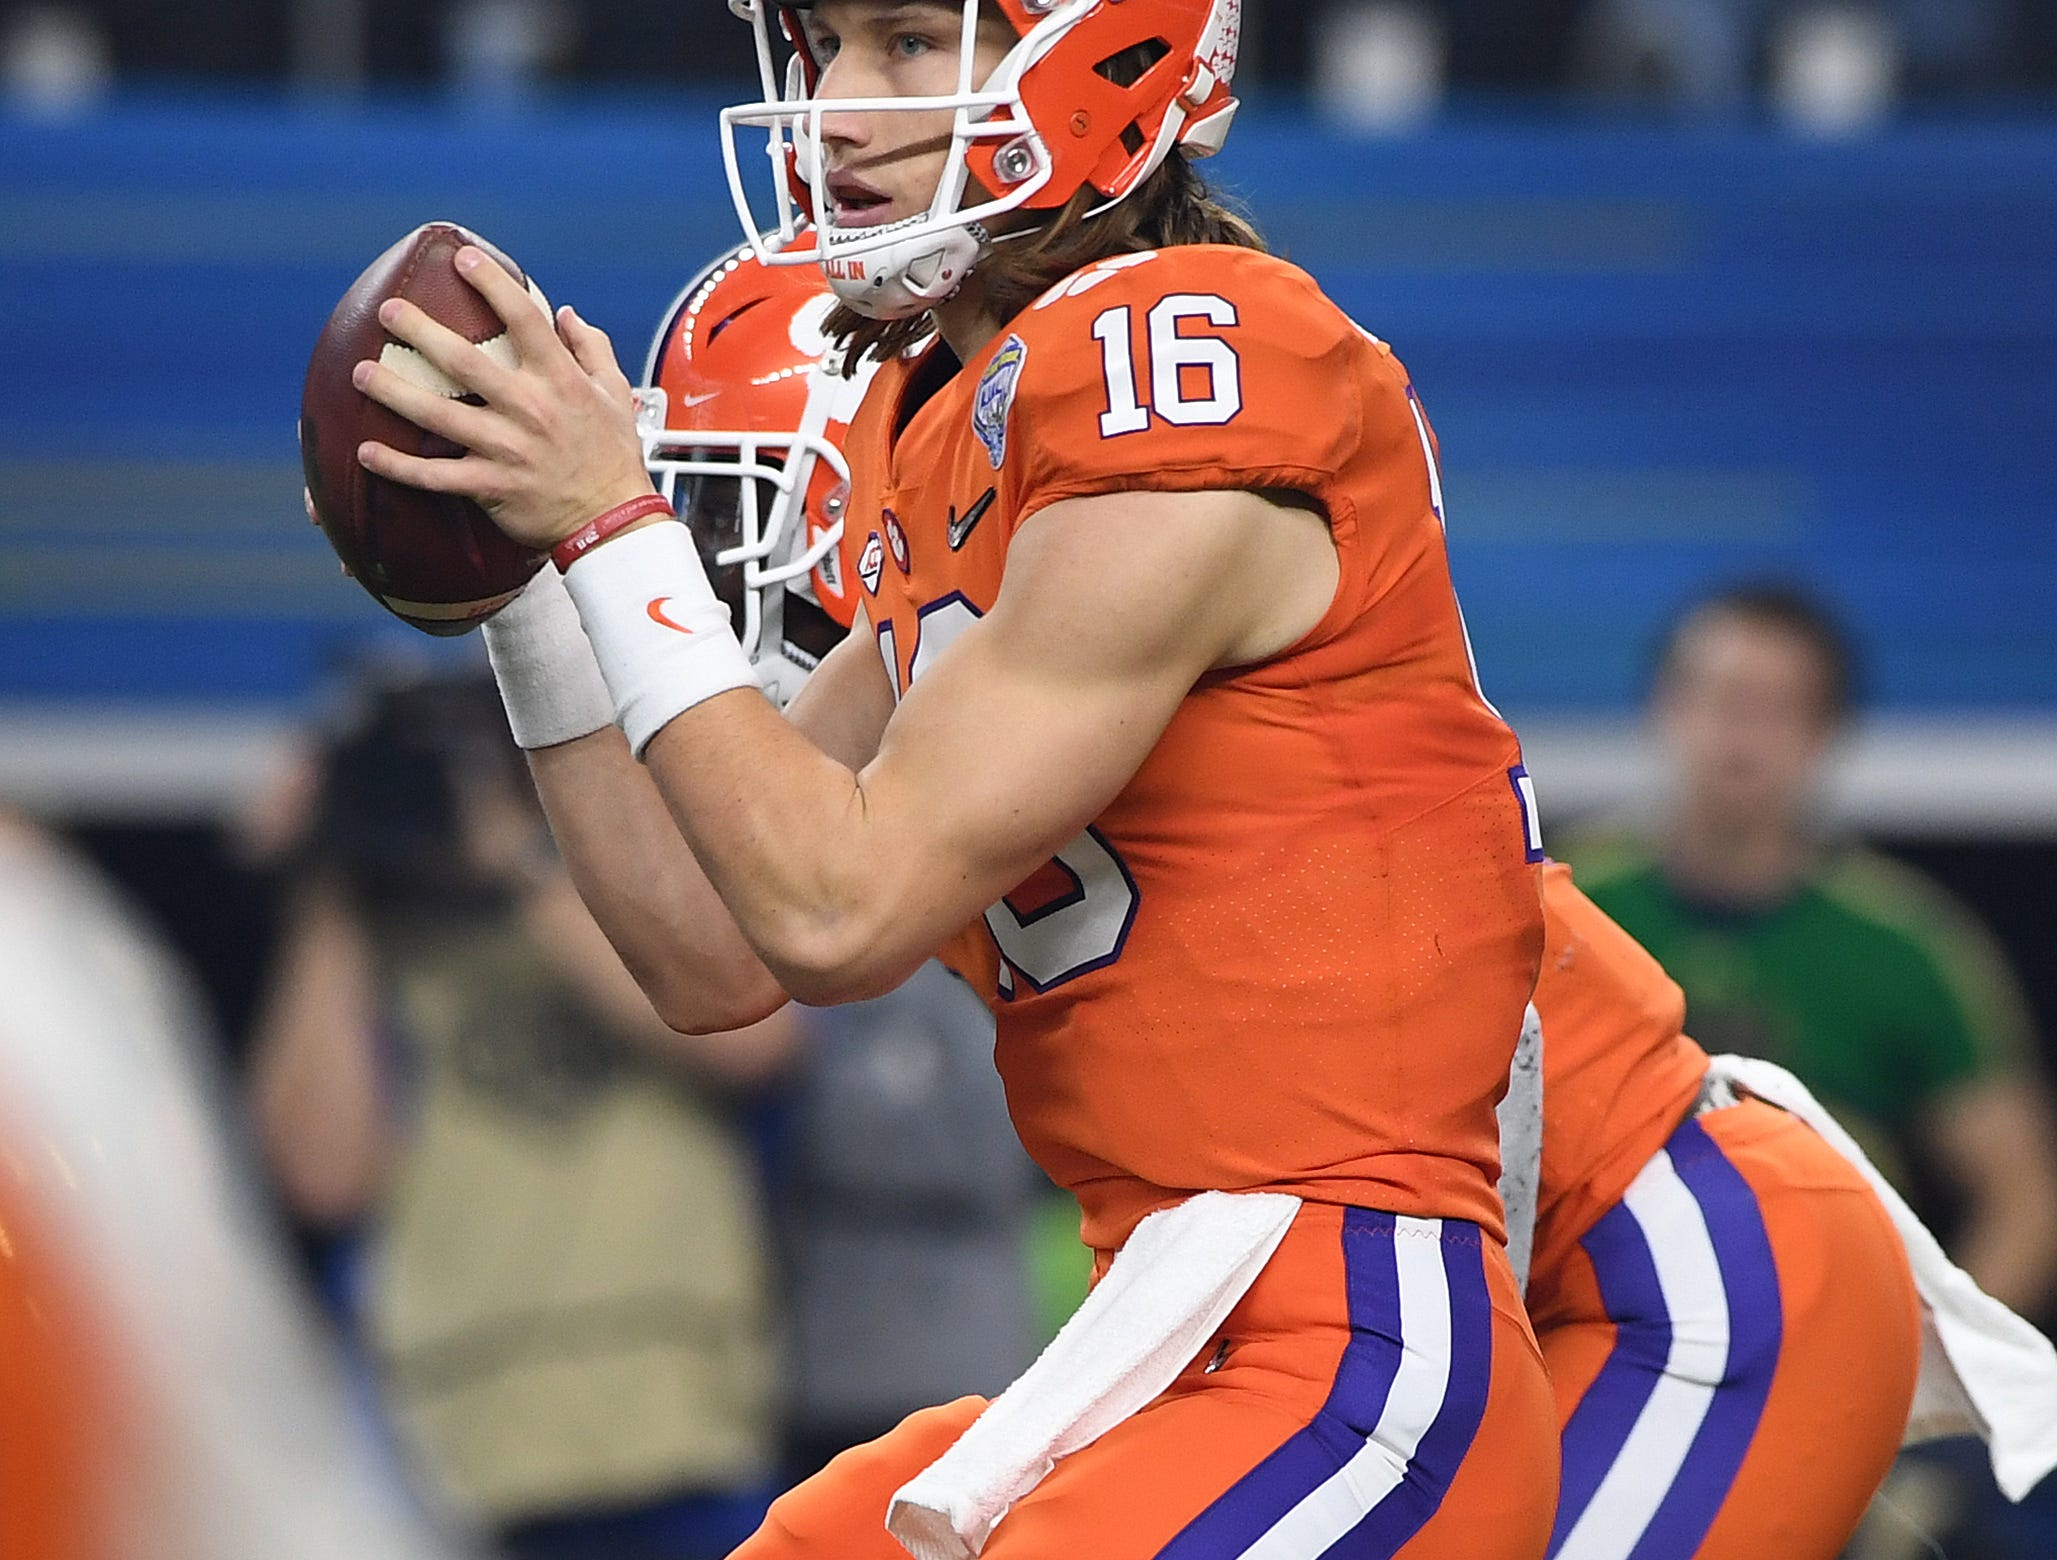 Clemson quarterback Trevor Lawrence (16) plays against Notre Dame during the 1st quarter of the Goodyear Cotton Bowl at AT&T stadium in Arlington, TX Saturday, December 29, 2018.